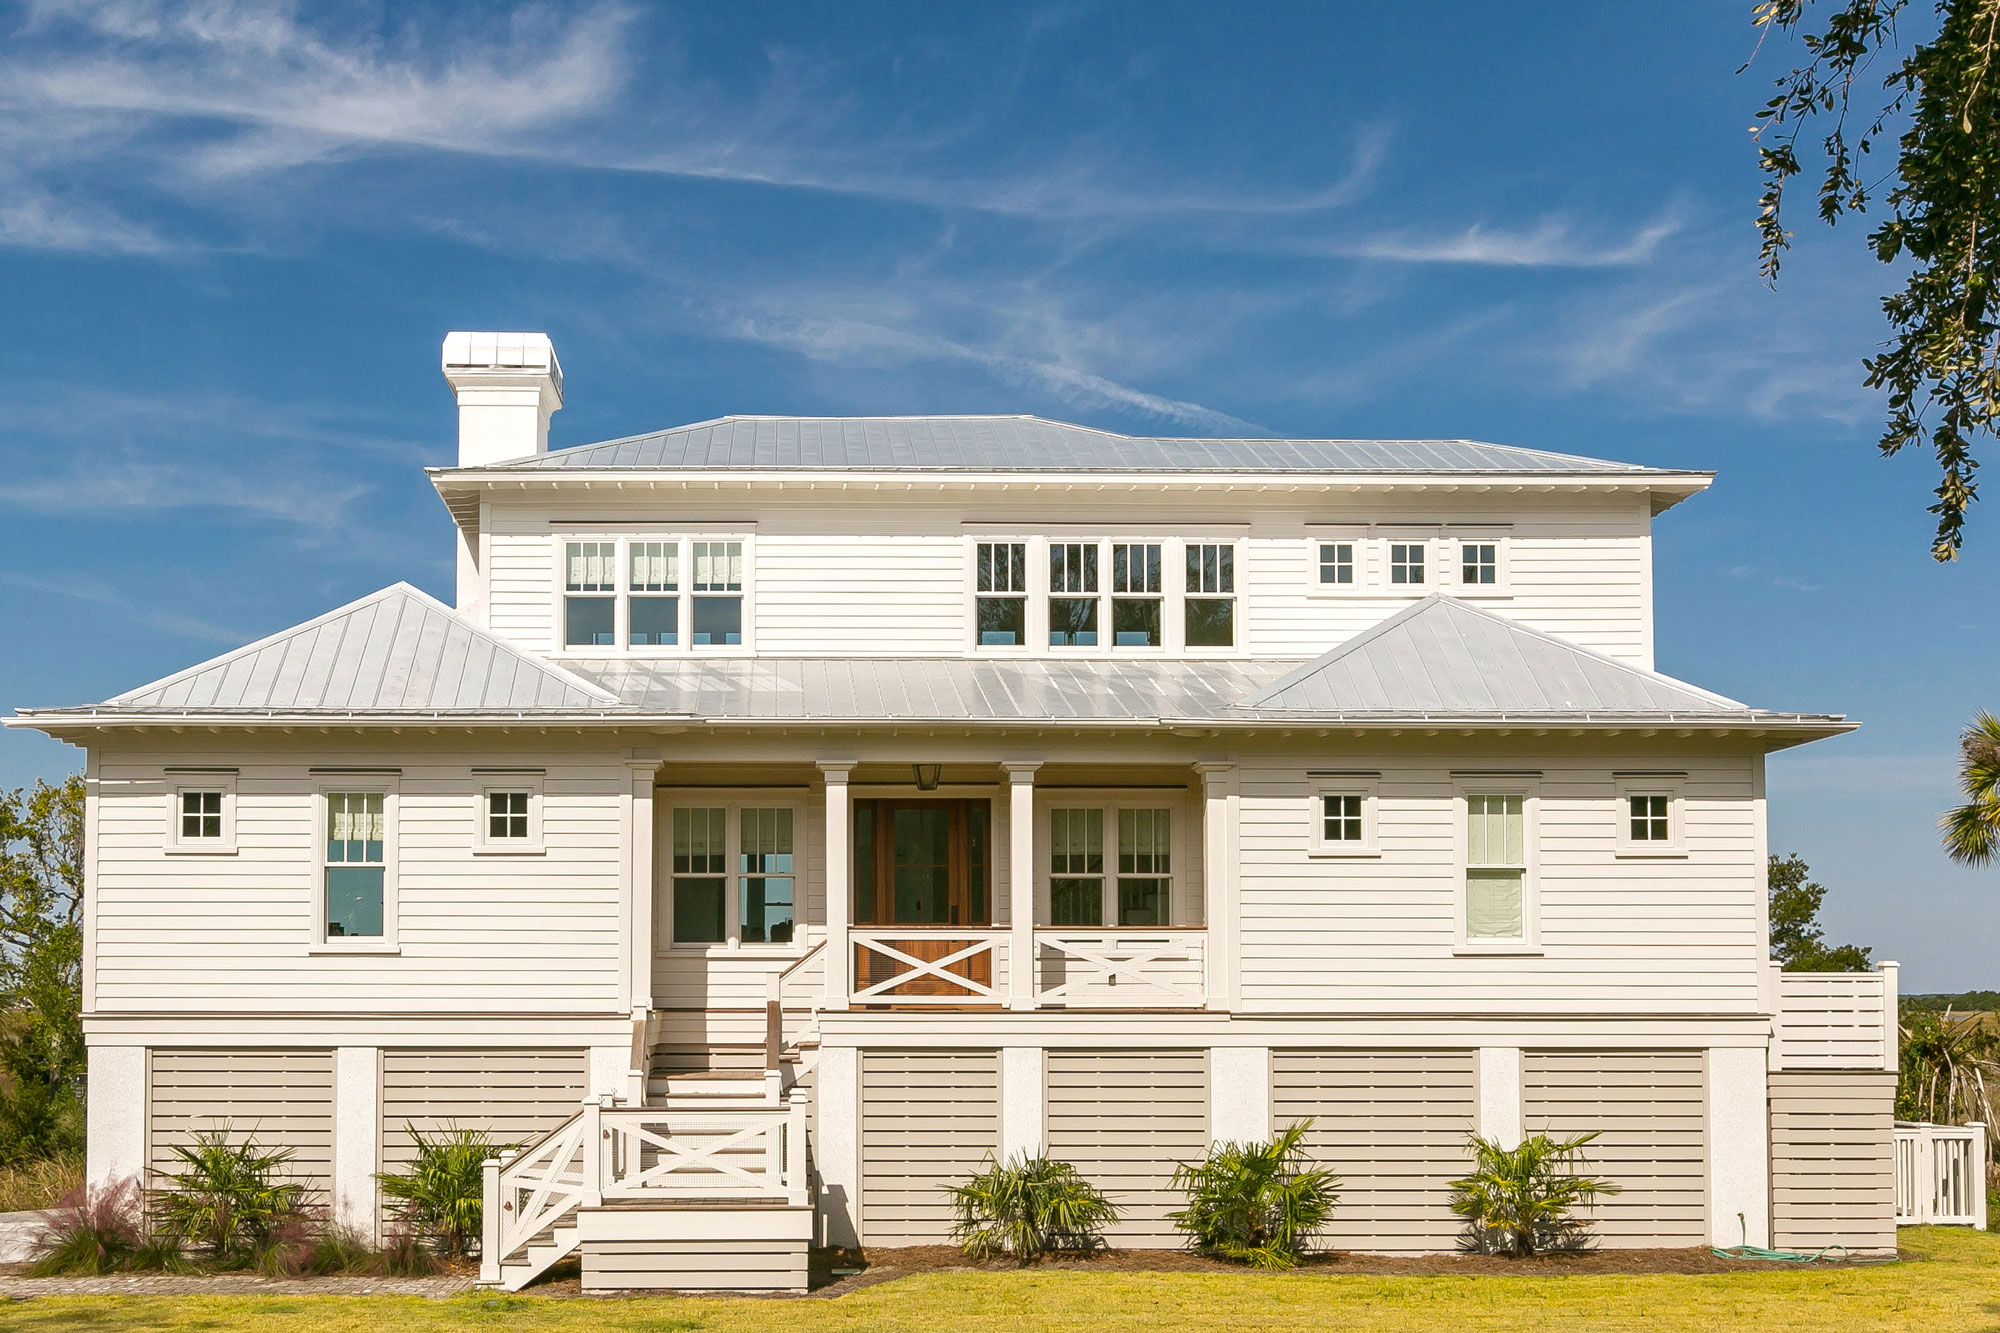 Large Feature Image of Sullivan's Island Marsh home